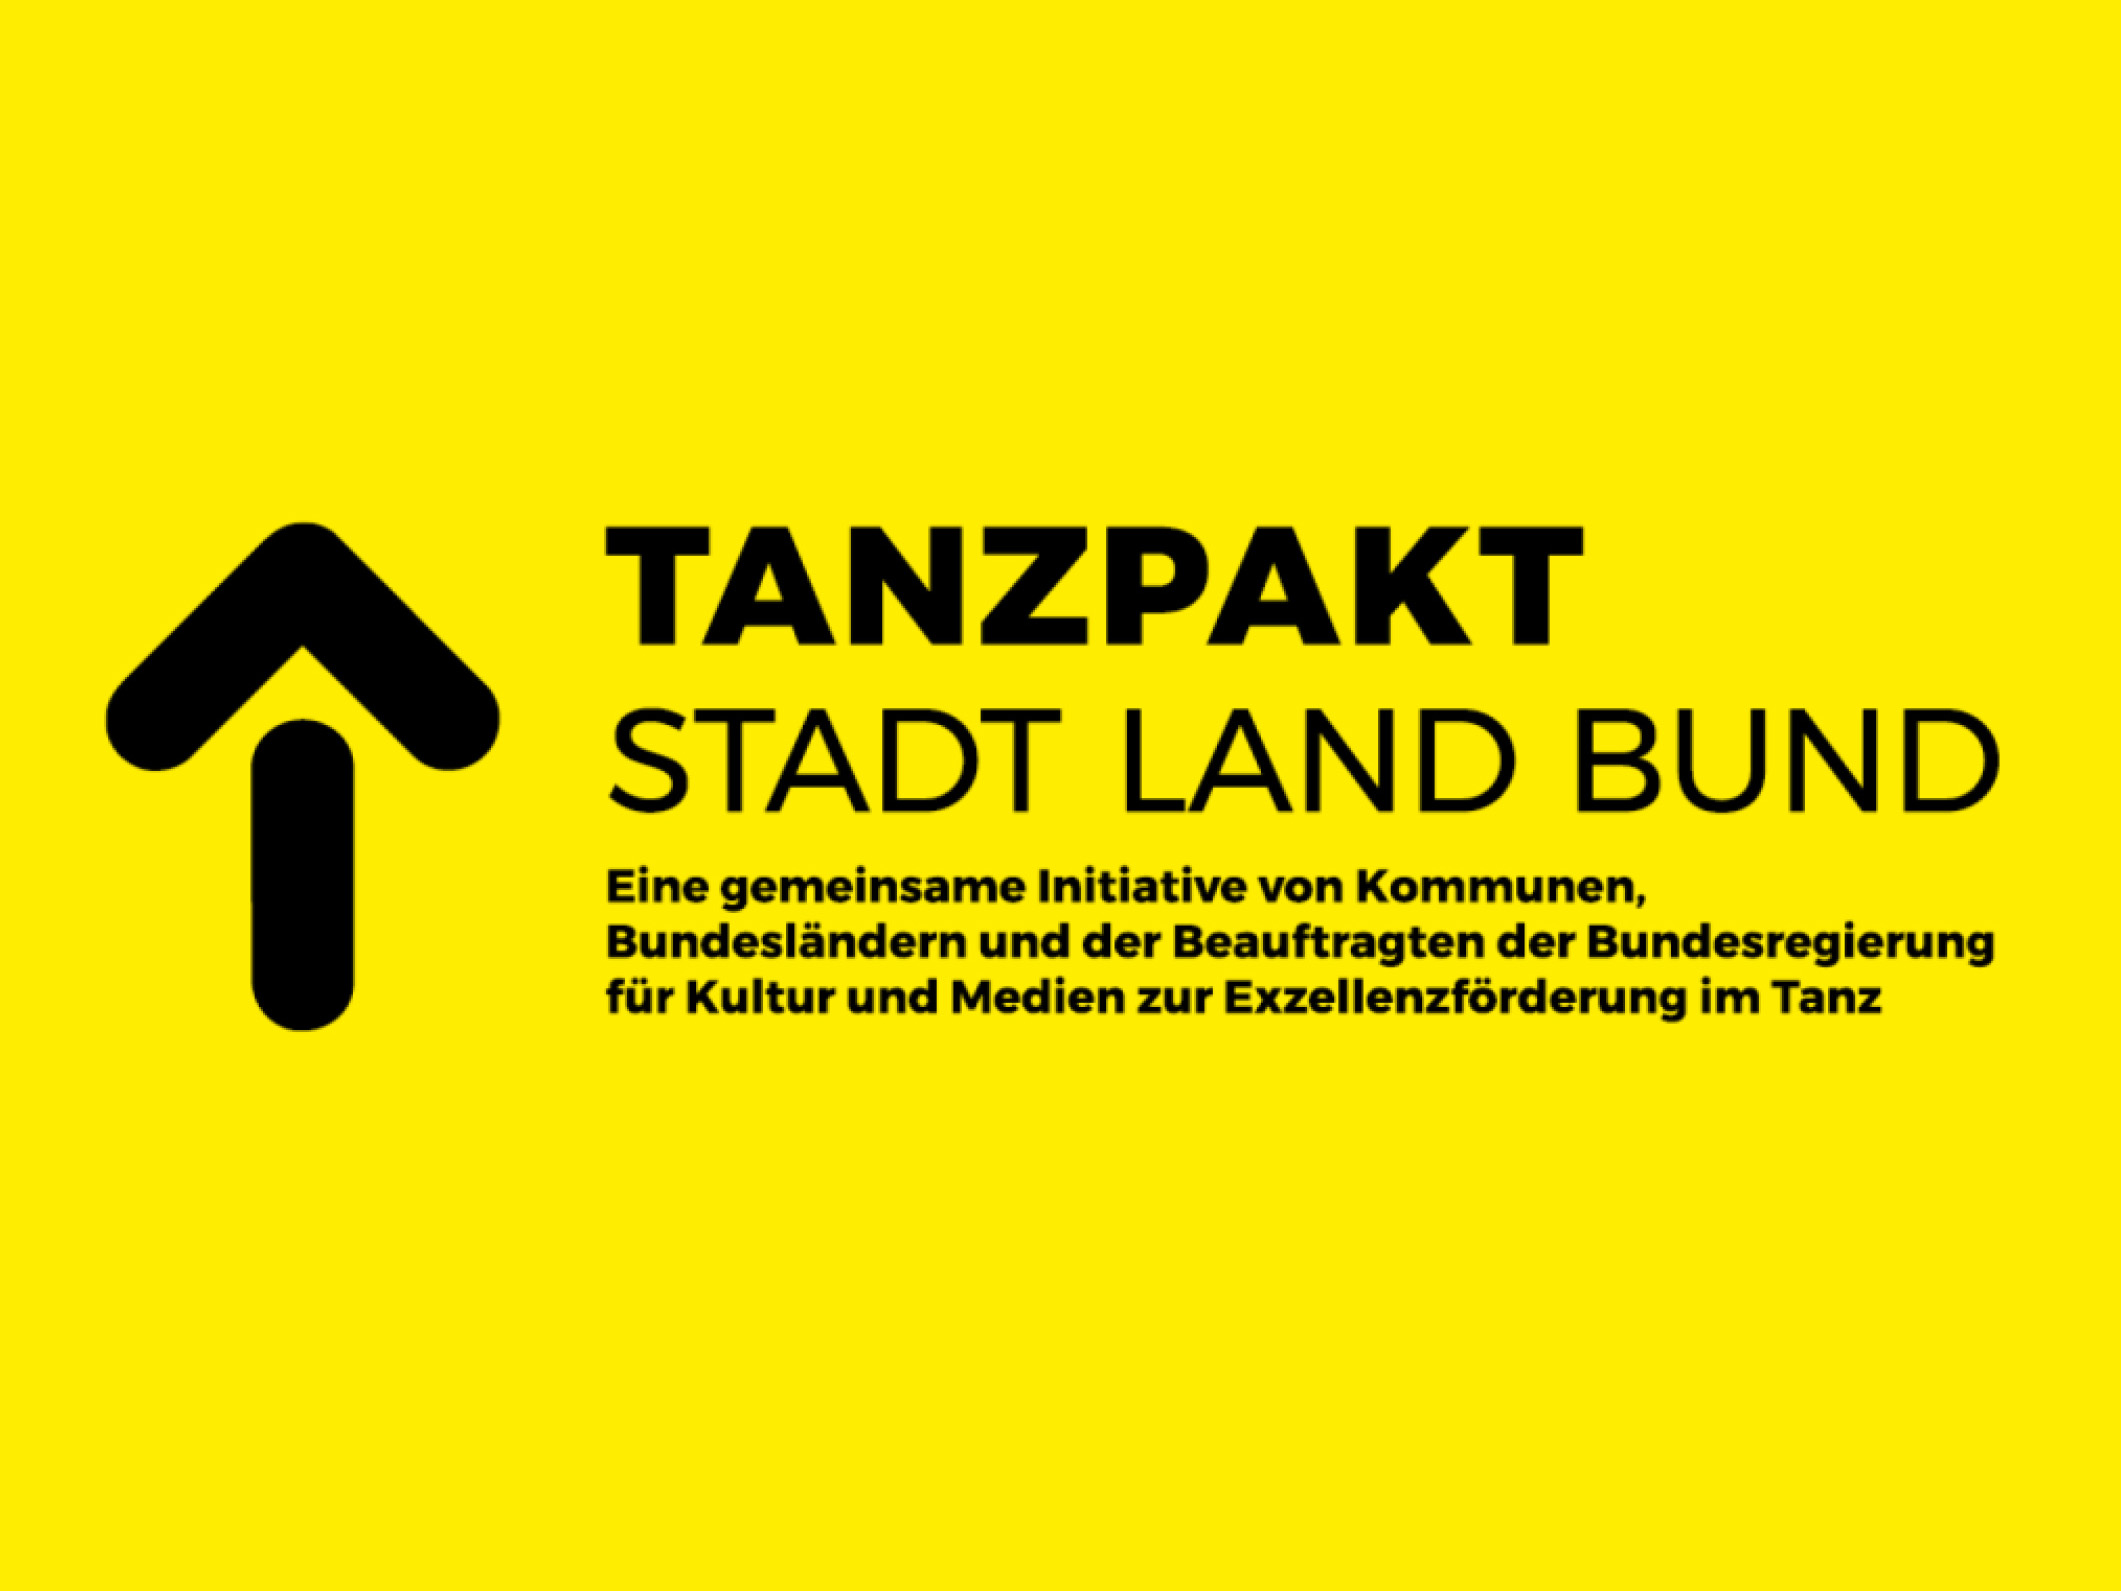 TANZPAKT-LOGO-Website.jpg